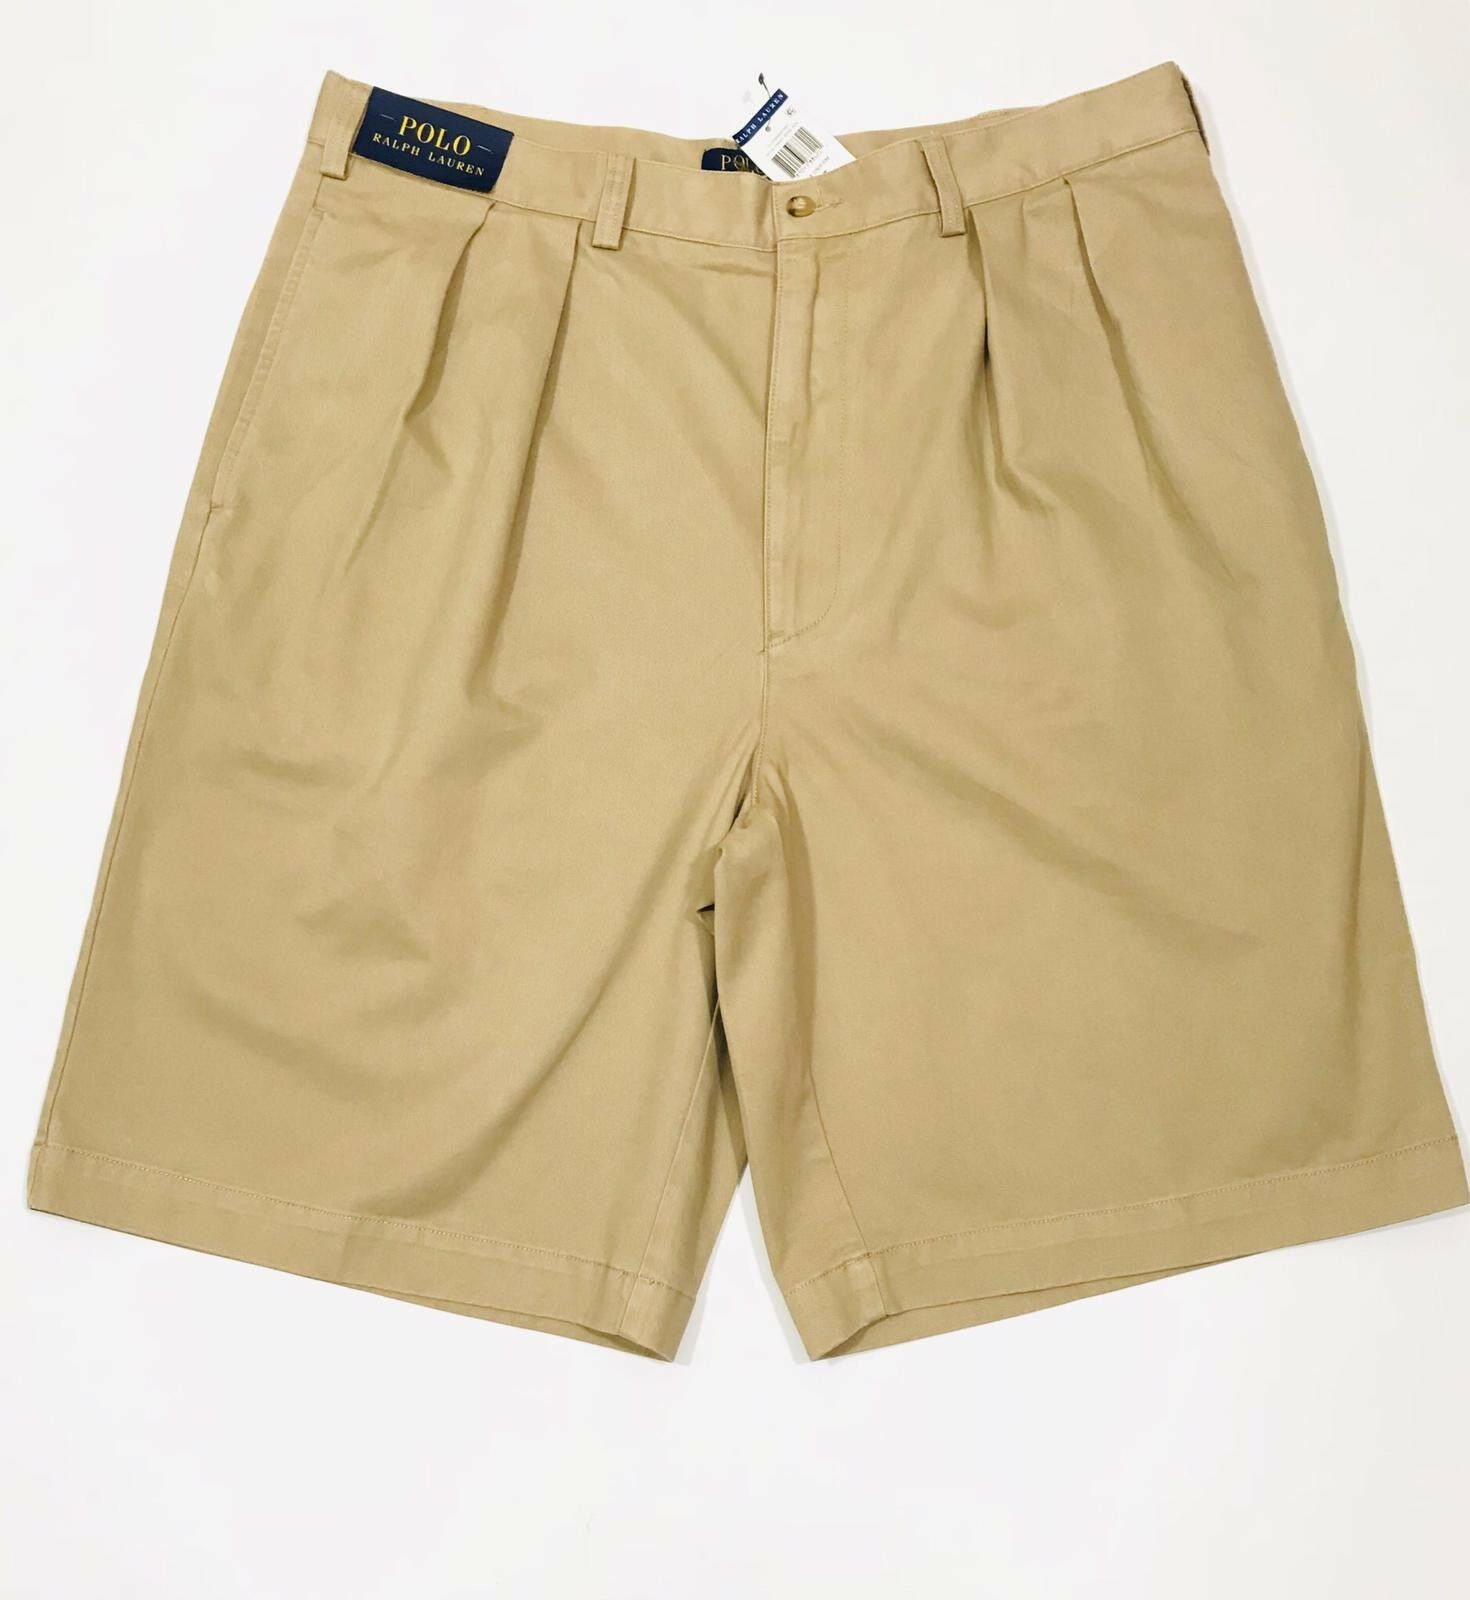 Ralph Lauren Shorts Classic Fit Pleated (Khaki)                         RRP